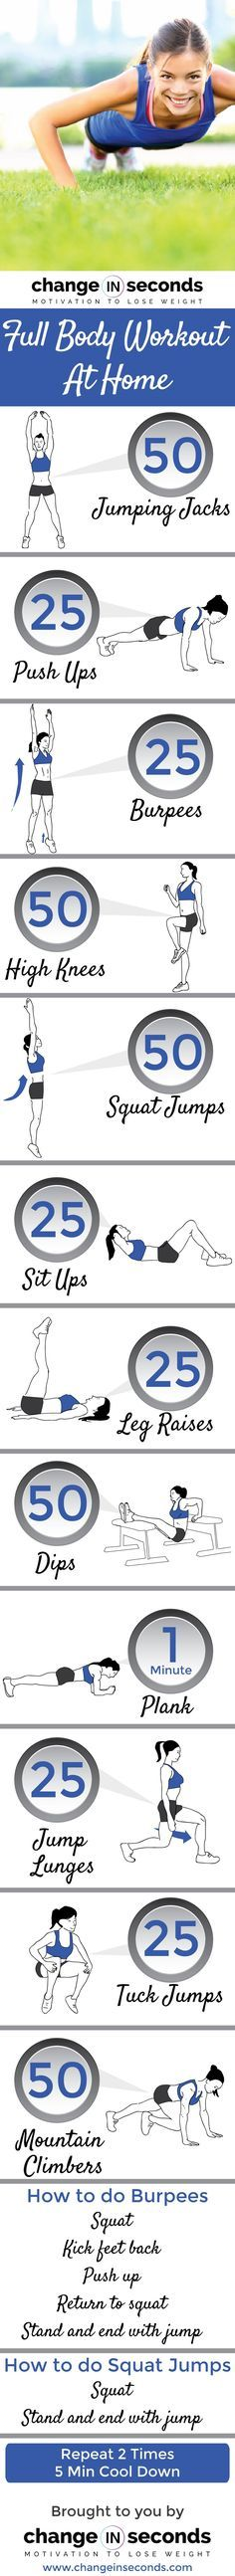 Full Body Workout At Home http://www.changeinseconds.com/full-body-workout-at-home/